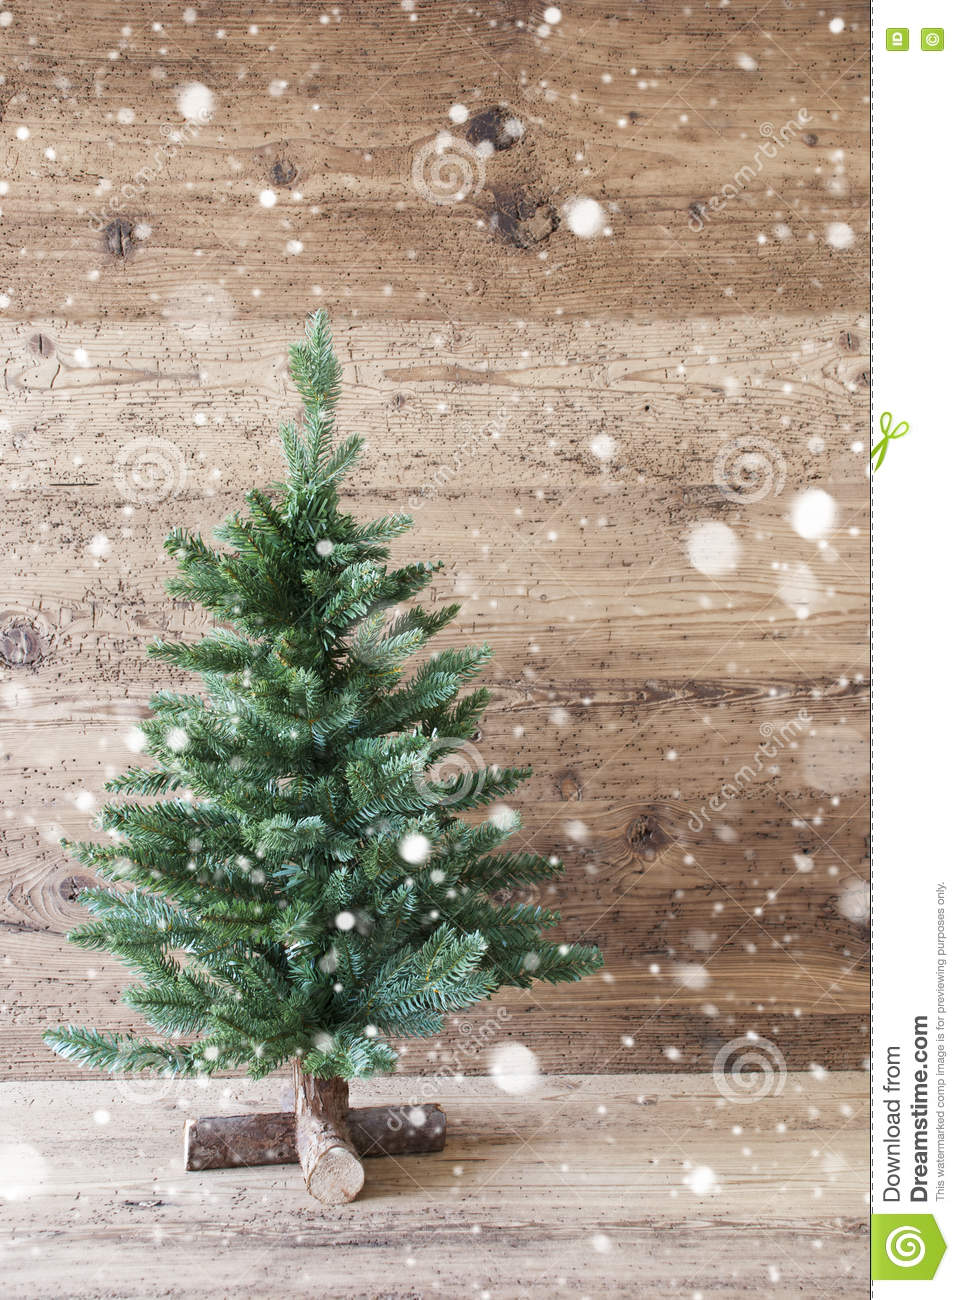 Vertical Christmas Tree Aged Wooden Background Snowflakes Shabby Chic Stock Image Image Of White Aged 77864429